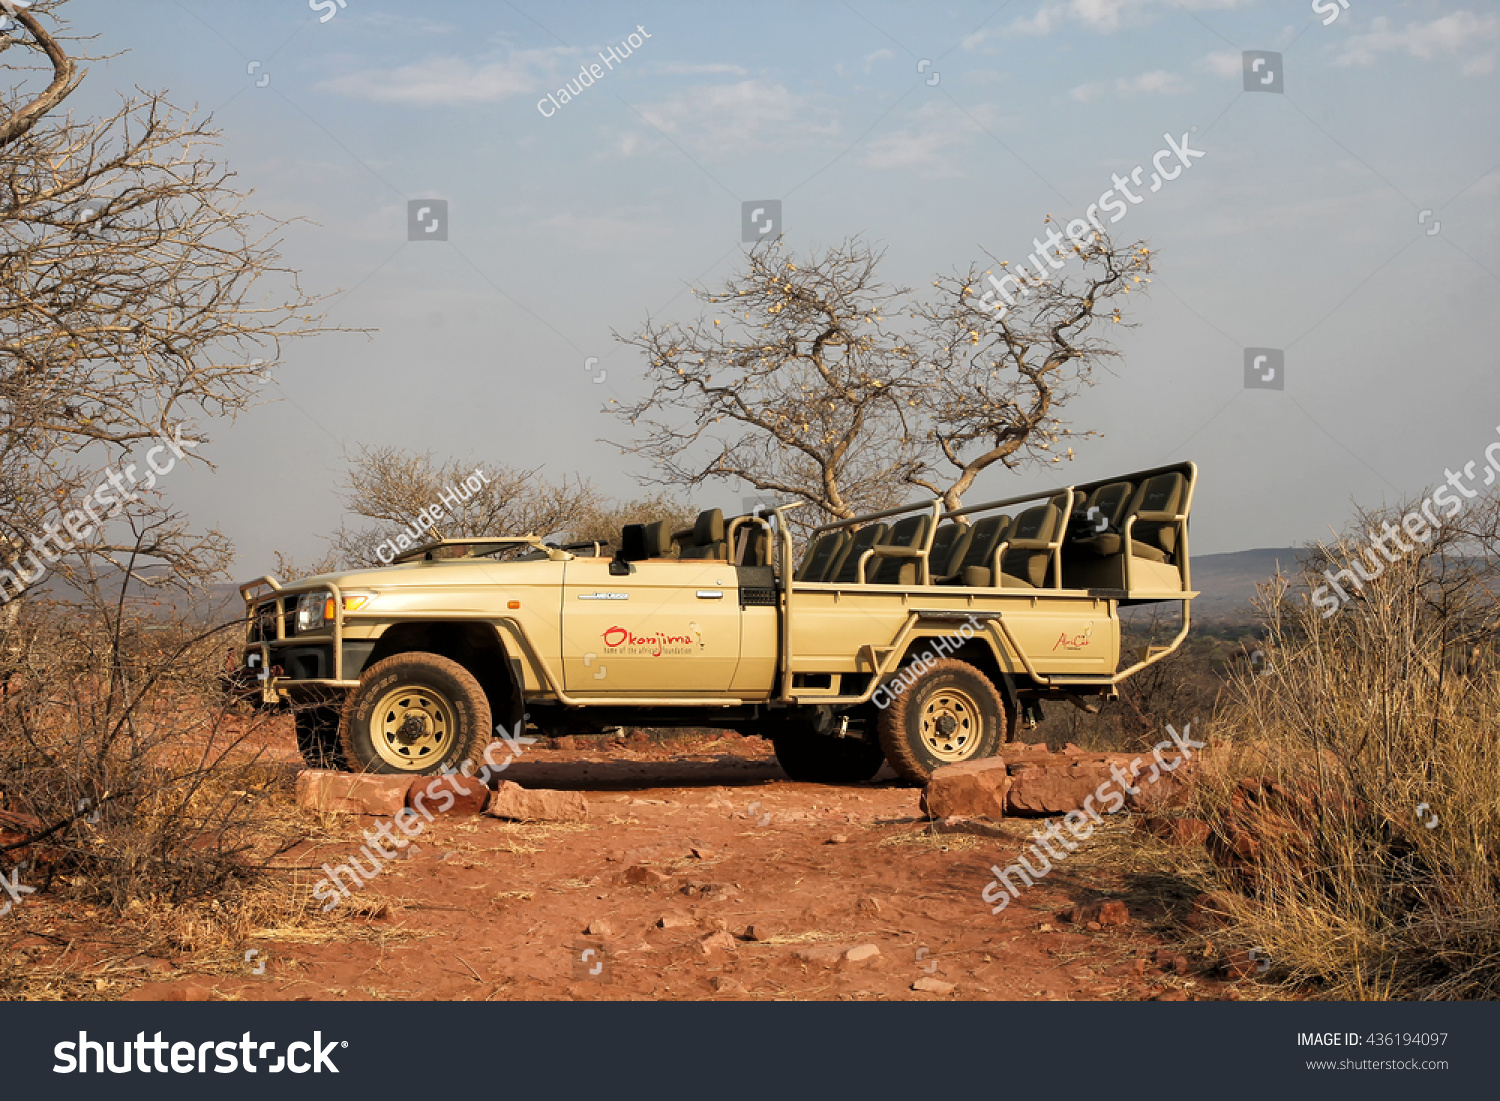 OKONJIMA, NAMIBIA - SEPTEMBER 11, 2015: Toyota Land Cruiser is the safari vehicle of choice for driving tourists around in the African wilderness of Namibia.